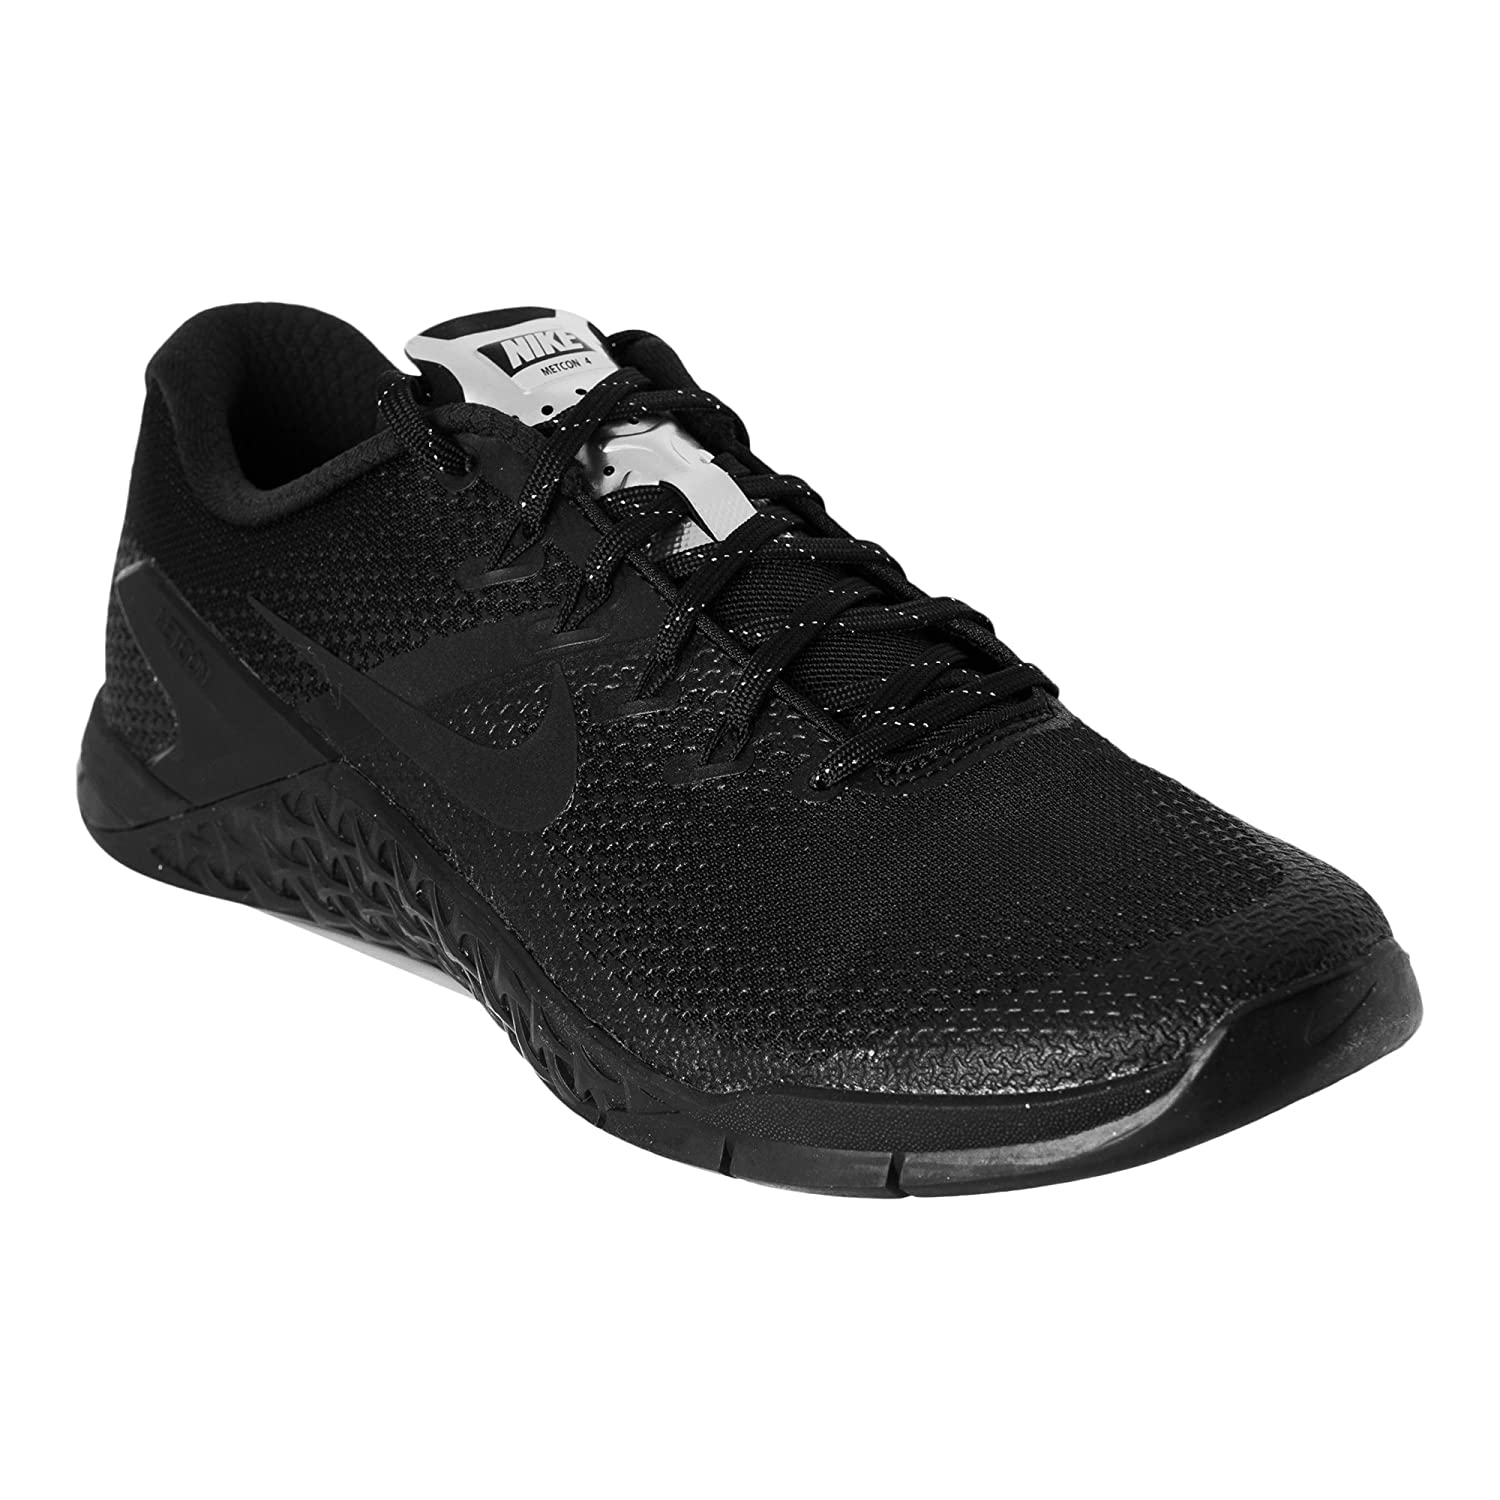 NIKE Women Grey Metcon 4 Training Shoe Grey Women B004PHTOMY 7 B(M) US|Black/Black-m d9a01b